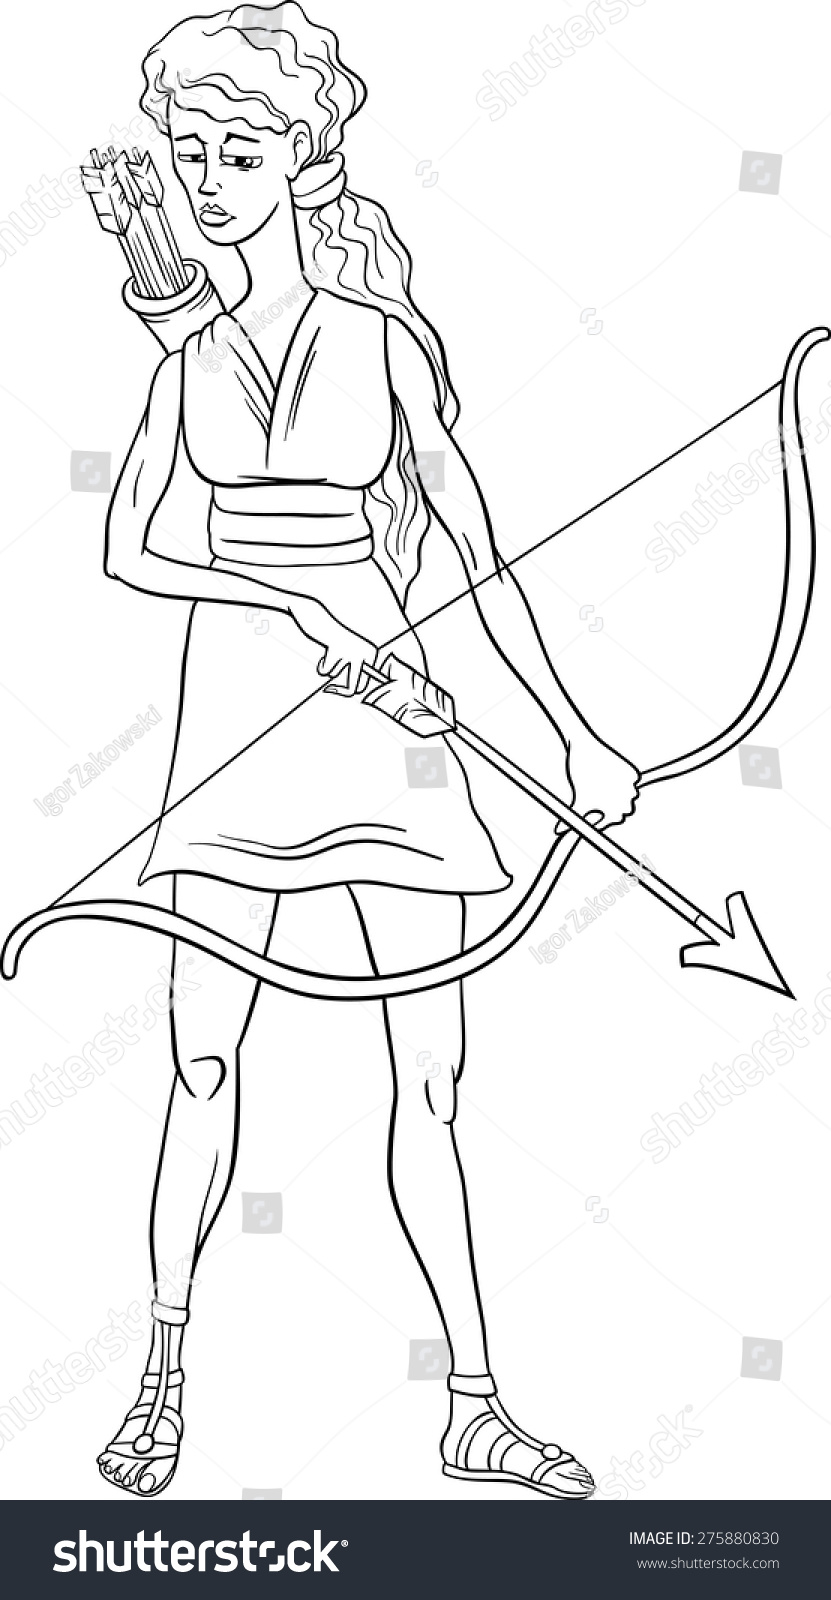 Black white cartoon vector illustration mythological stock vector black and white cartoon vector illustration of mythological greek goddess artemis for coloring book biocorpaavc Choice Image